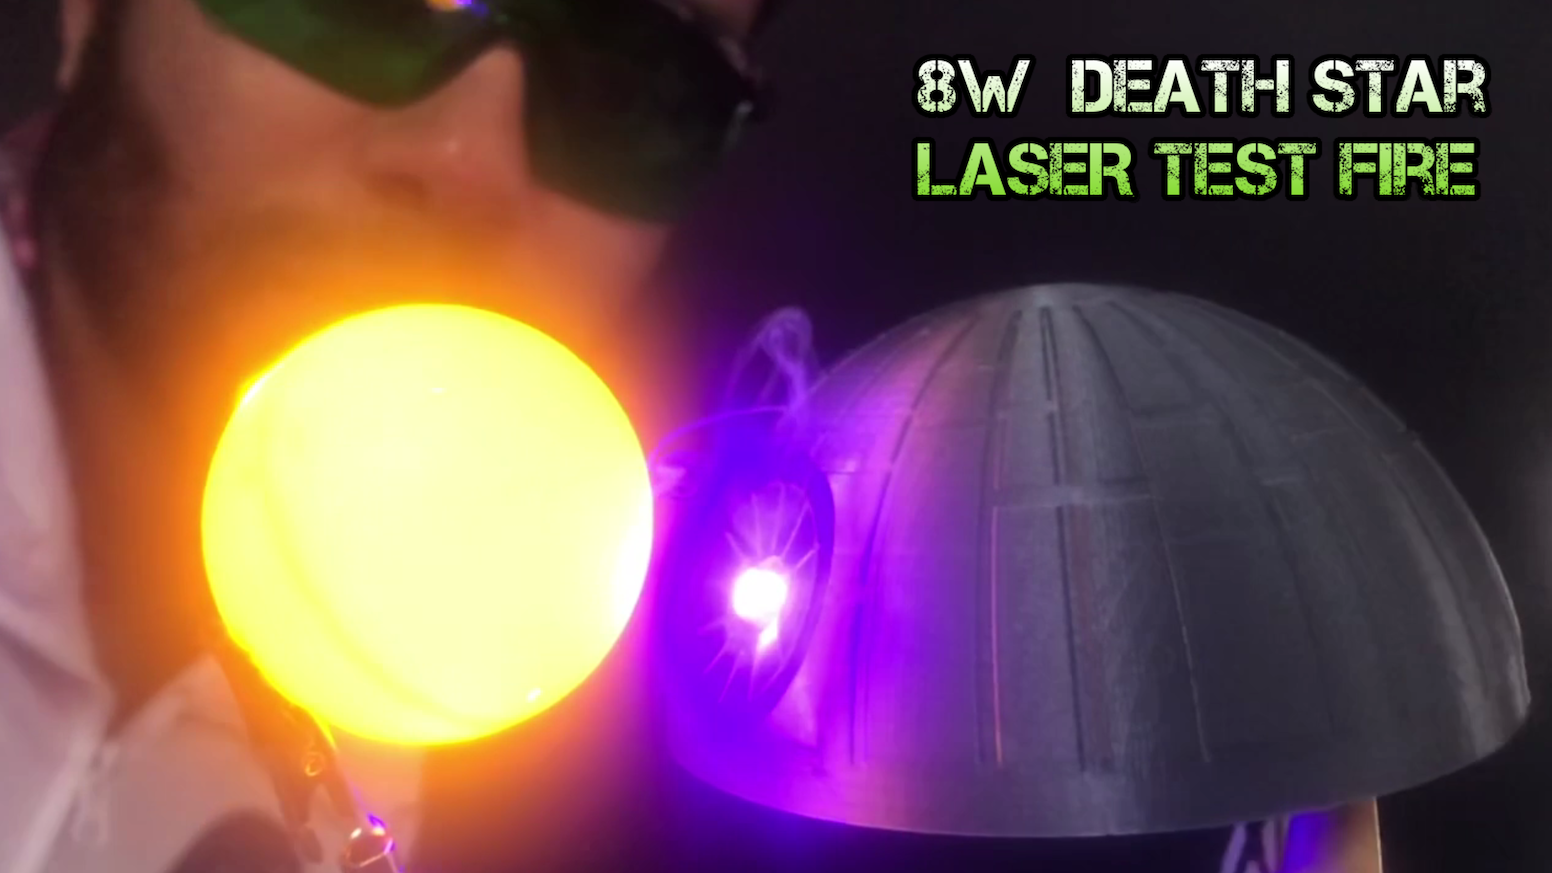 Let's launch a 3D printed miniature Death Star into SPACE with fully functional LASER's to celebrate Star Wars: Episode IX